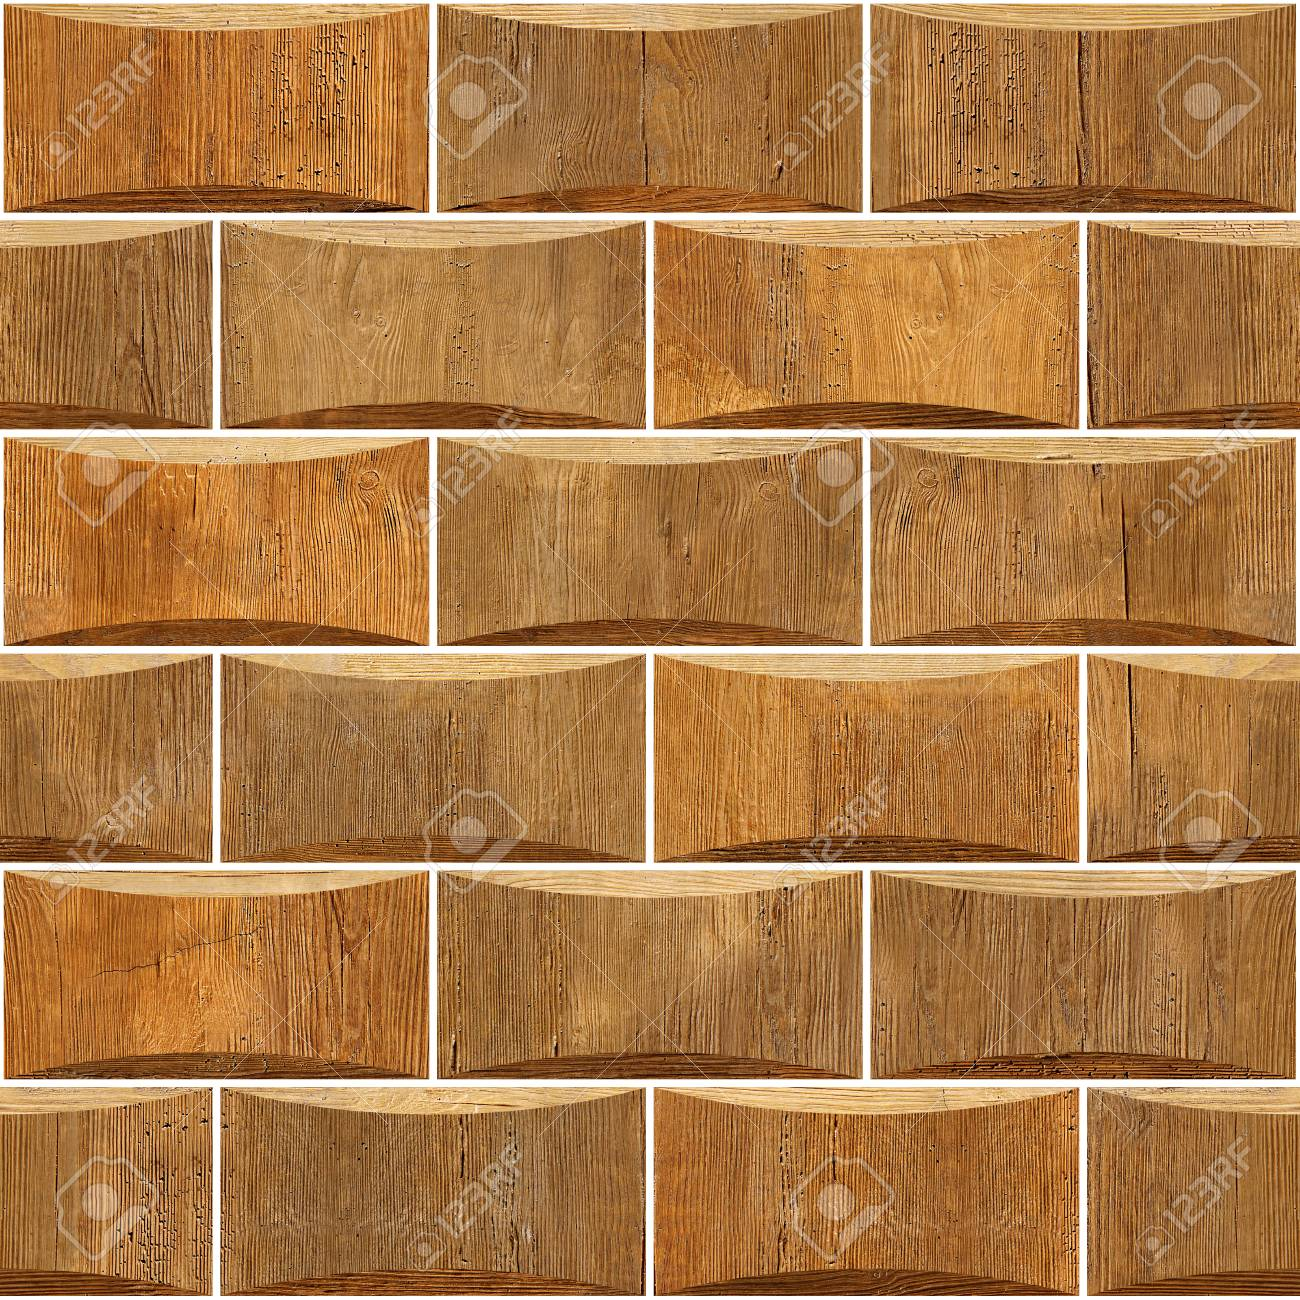 Decorative wooden bricks - Interior wall decoration - Abstract